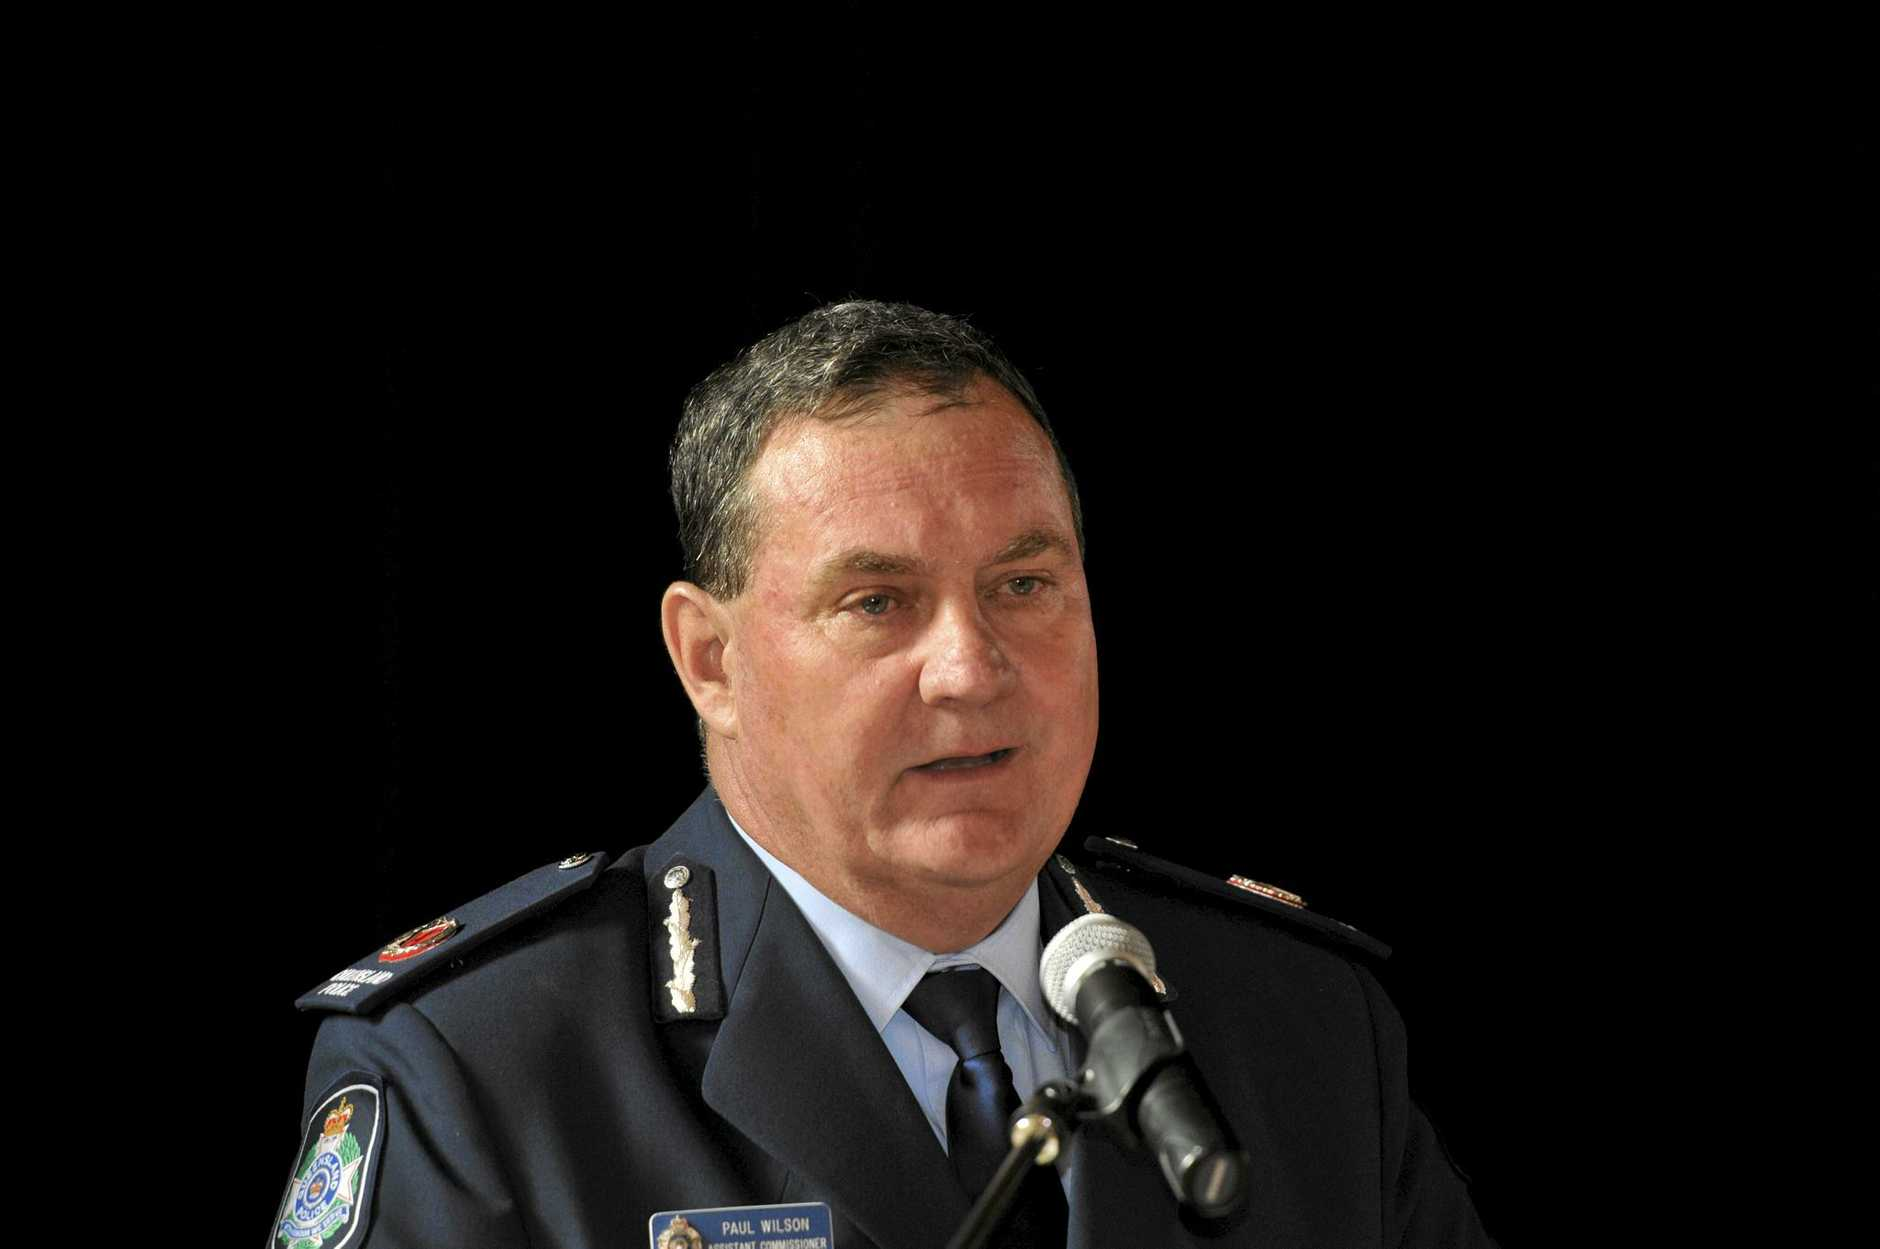 Assistant Commissioner Paul Wilson. National Police and Service Medals. Photo Dave Noonan / The Chronicle